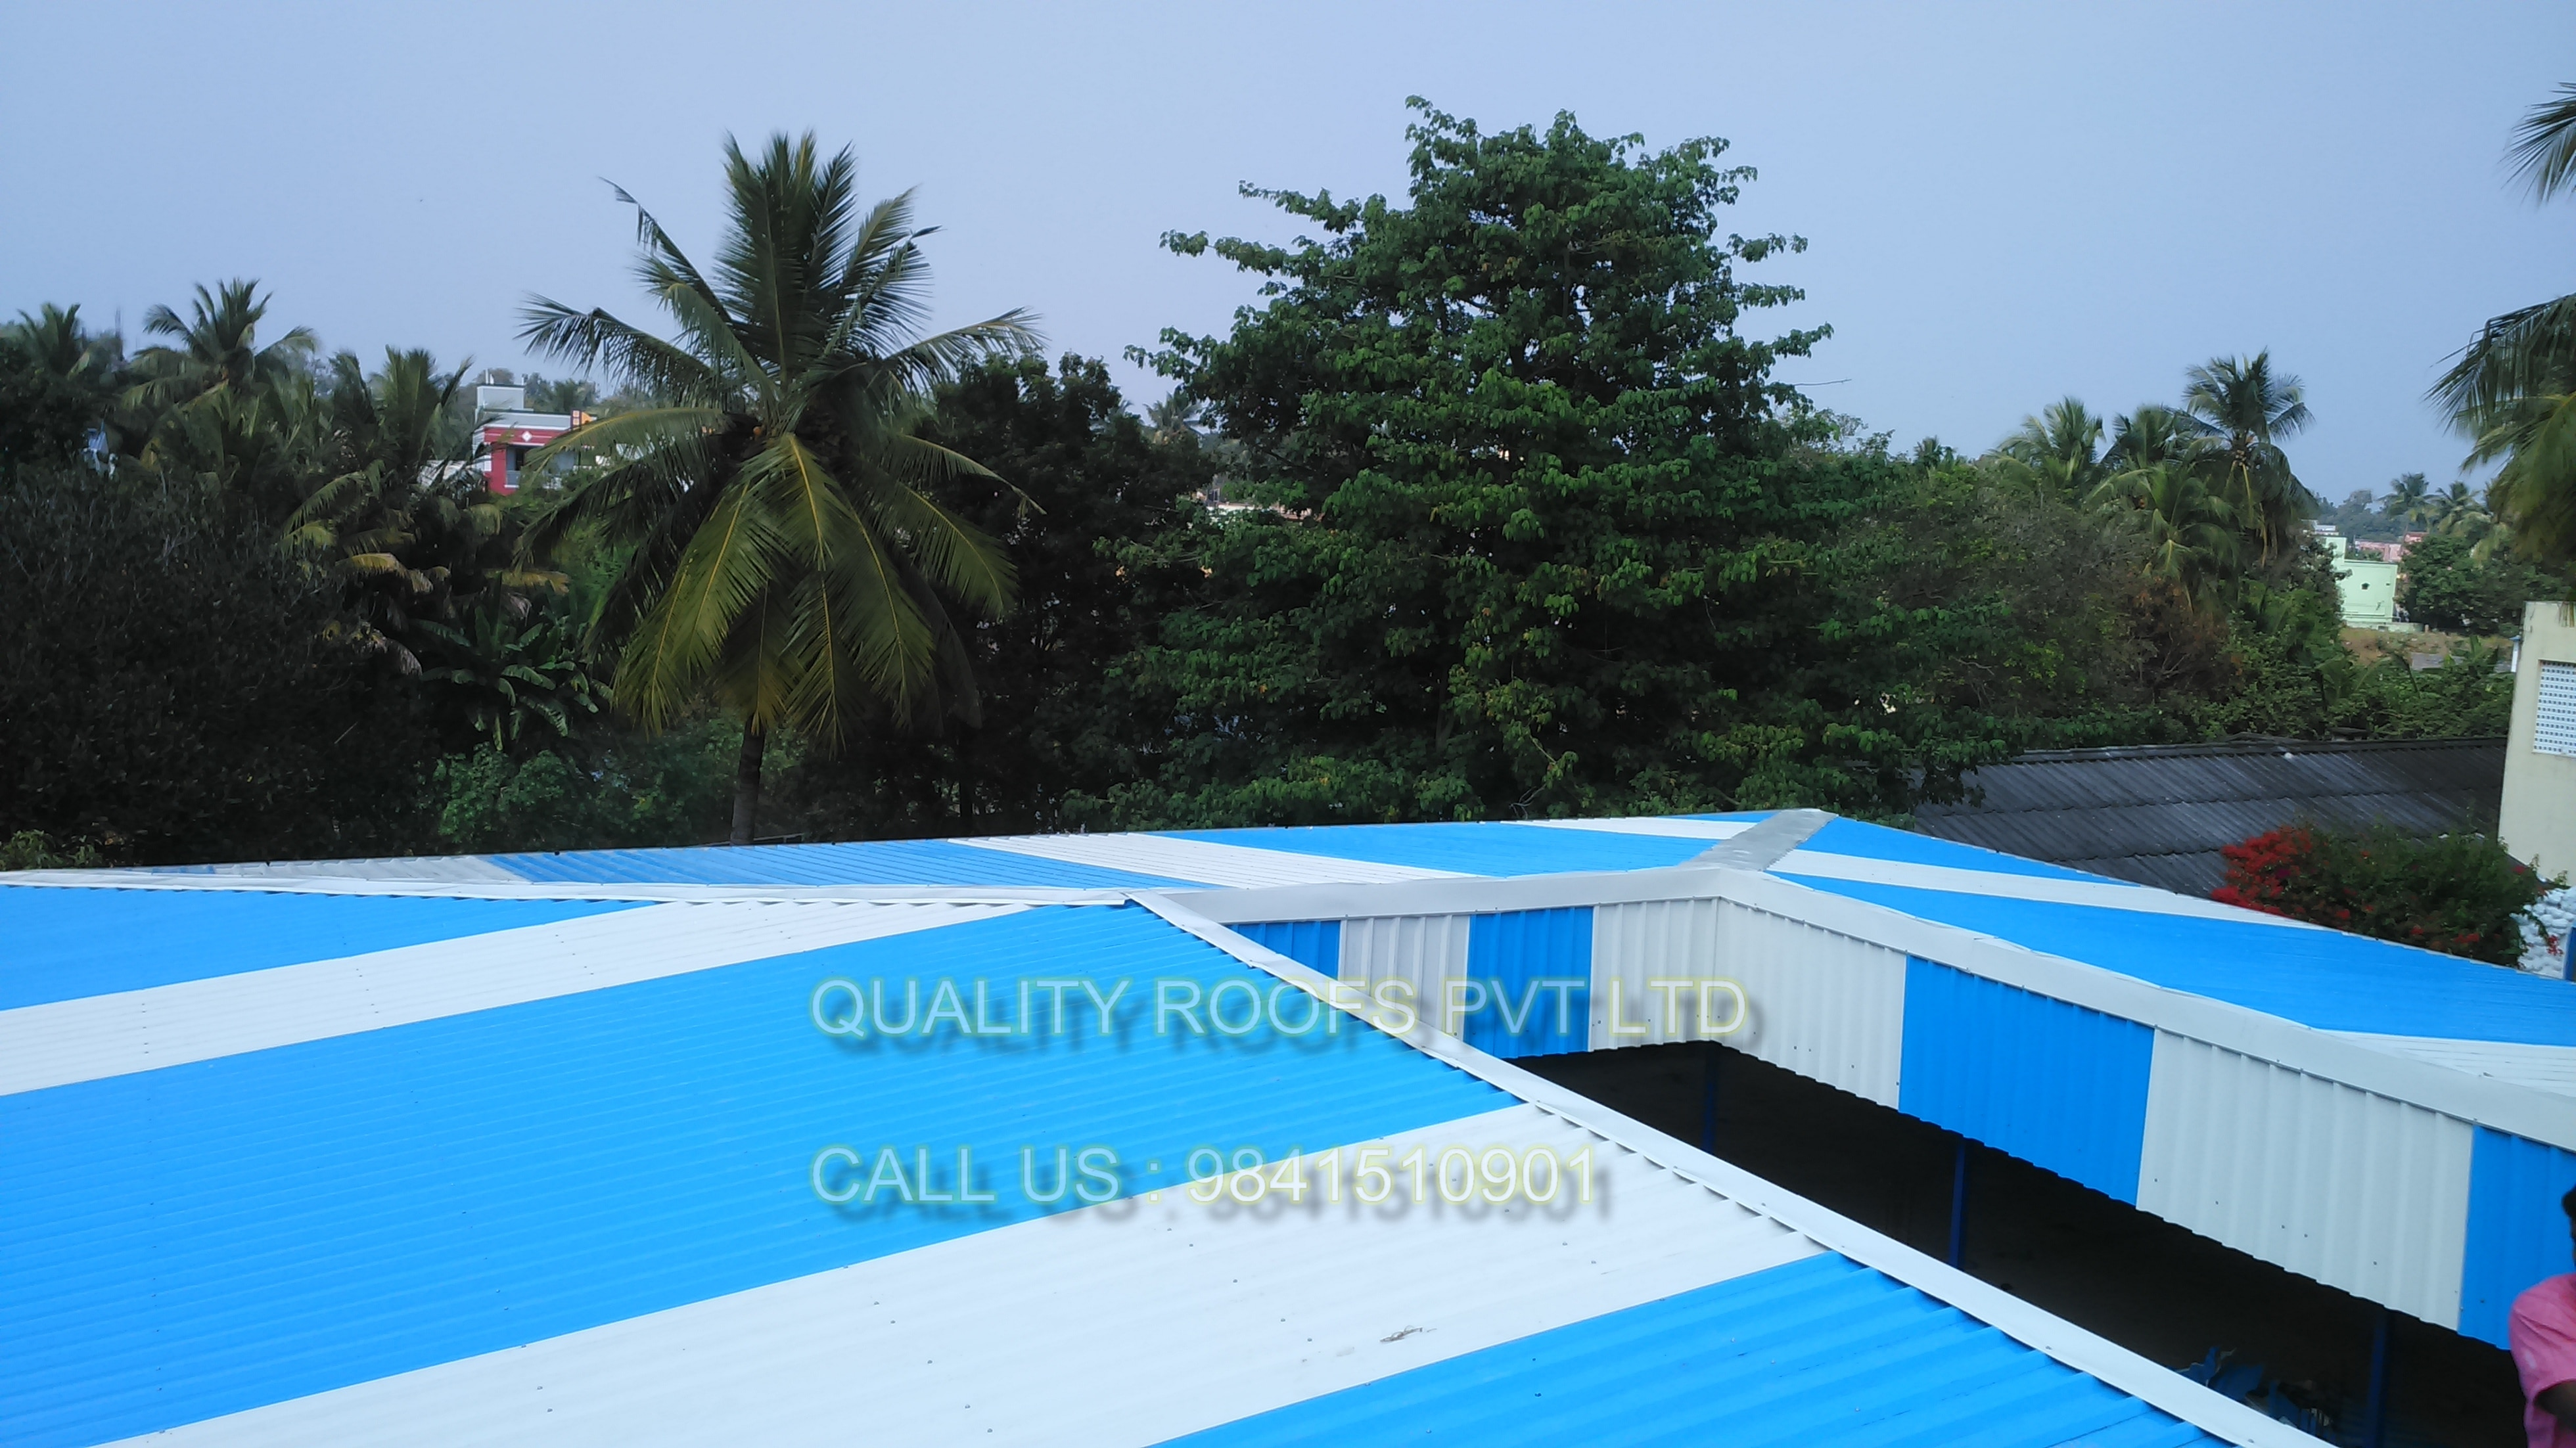 Metal Roofing Installation        We are the best Metal Roofing Installation. We assure to complete the project within the stipulated period of time without any constraints. We follow strict quality parameters during the process of installation services to assure the desired quality of our services. Customers can avail this service from us at very reasonable prices. we are the leading Roofing Contractors In Chennai. we are also the best Roofing Suppliers In Chennai.